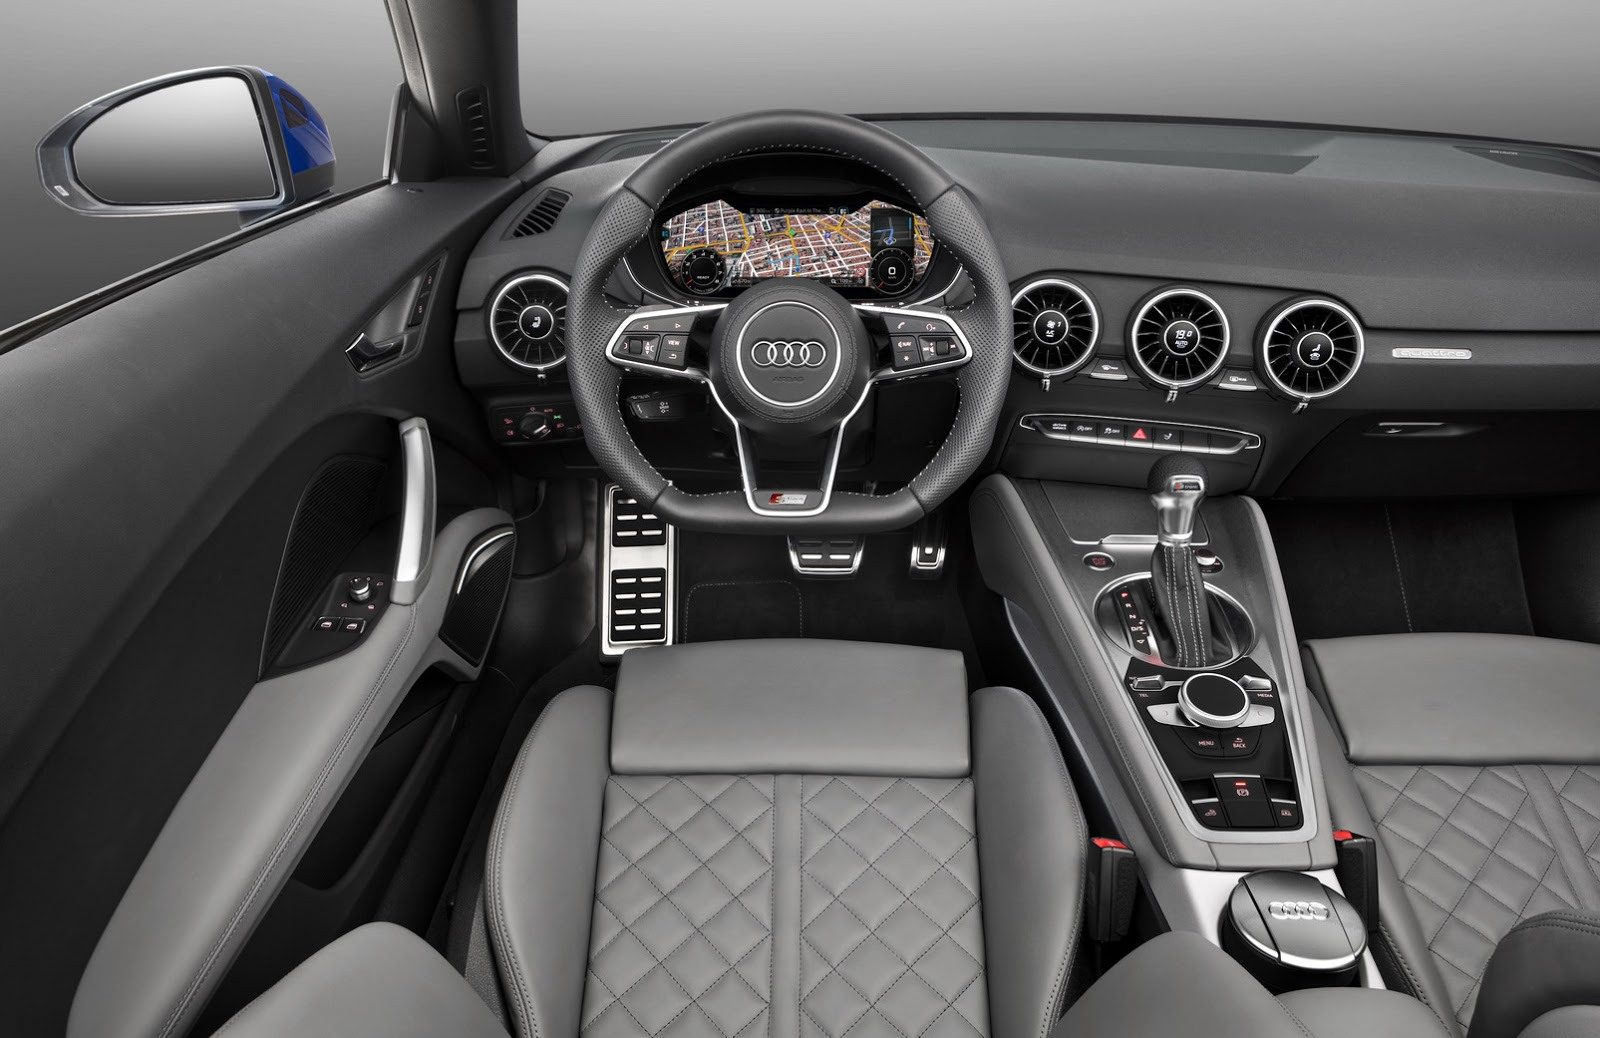 Audi Tt For Sale >> Audi Opens Up New TT and TTS Roadster [31 Photos]